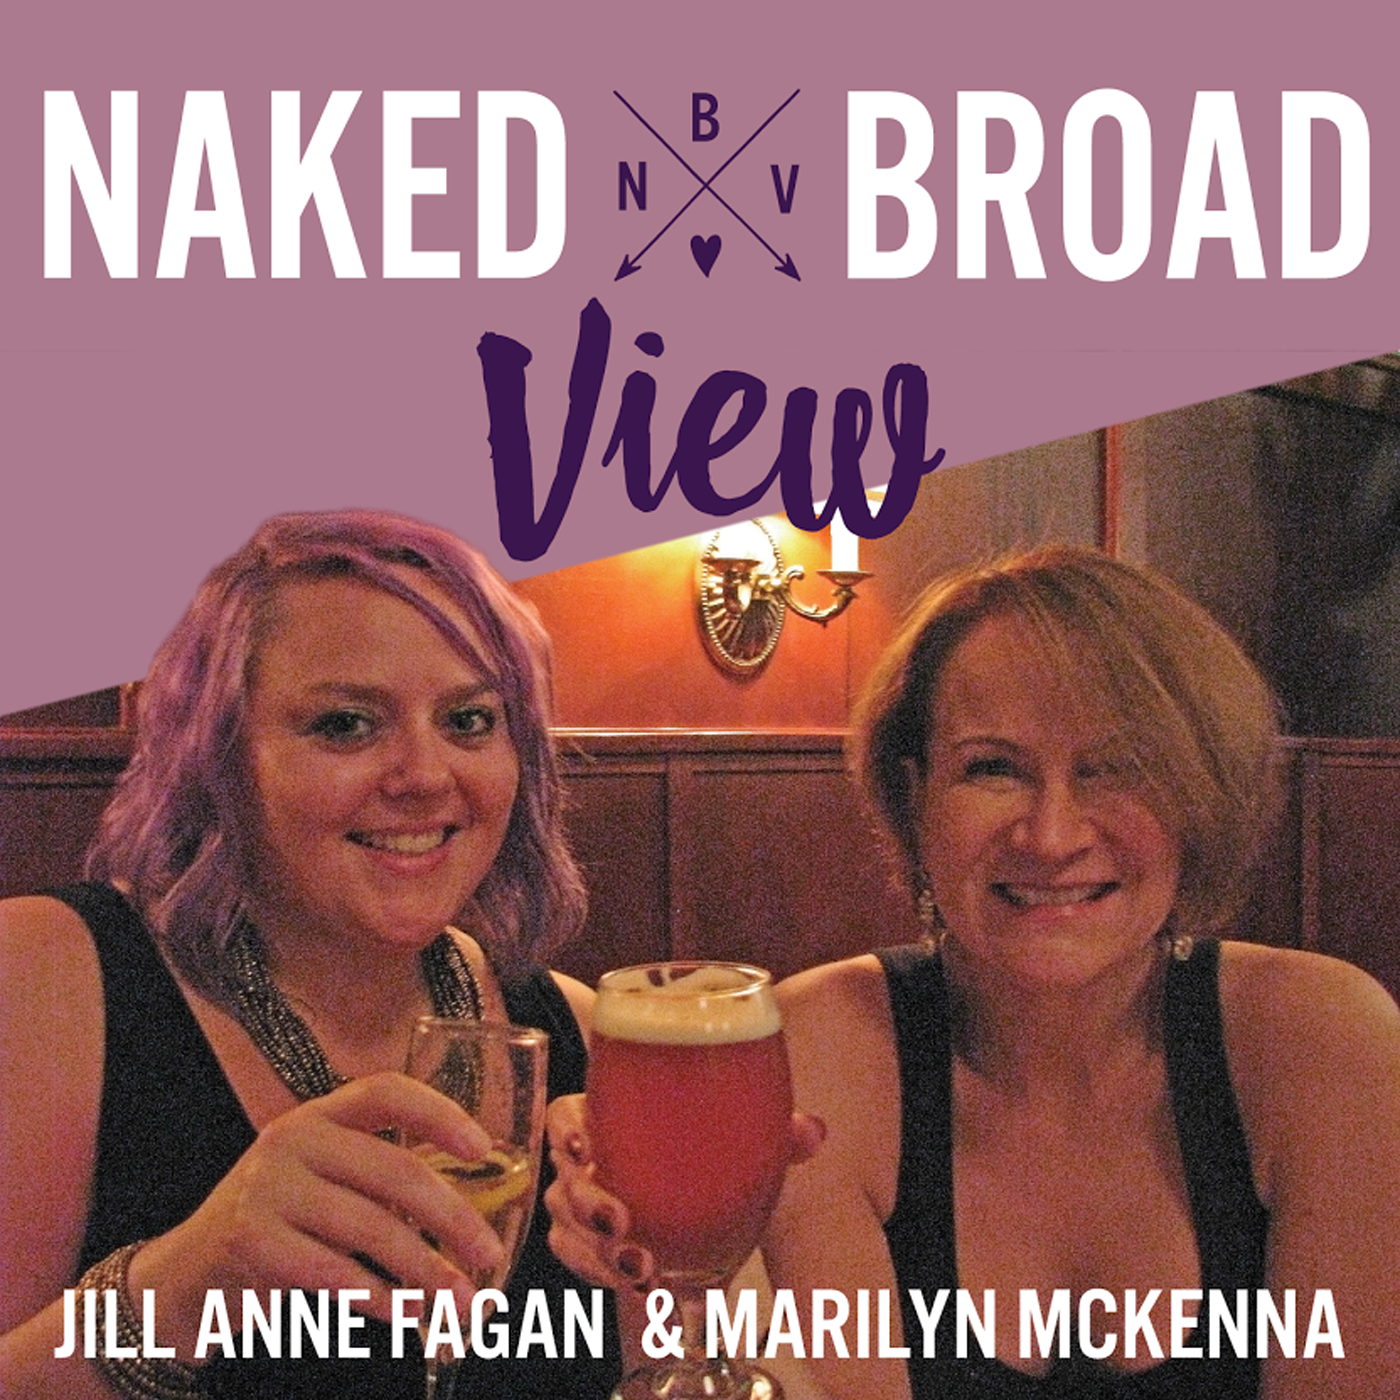 Naked Broad View show art